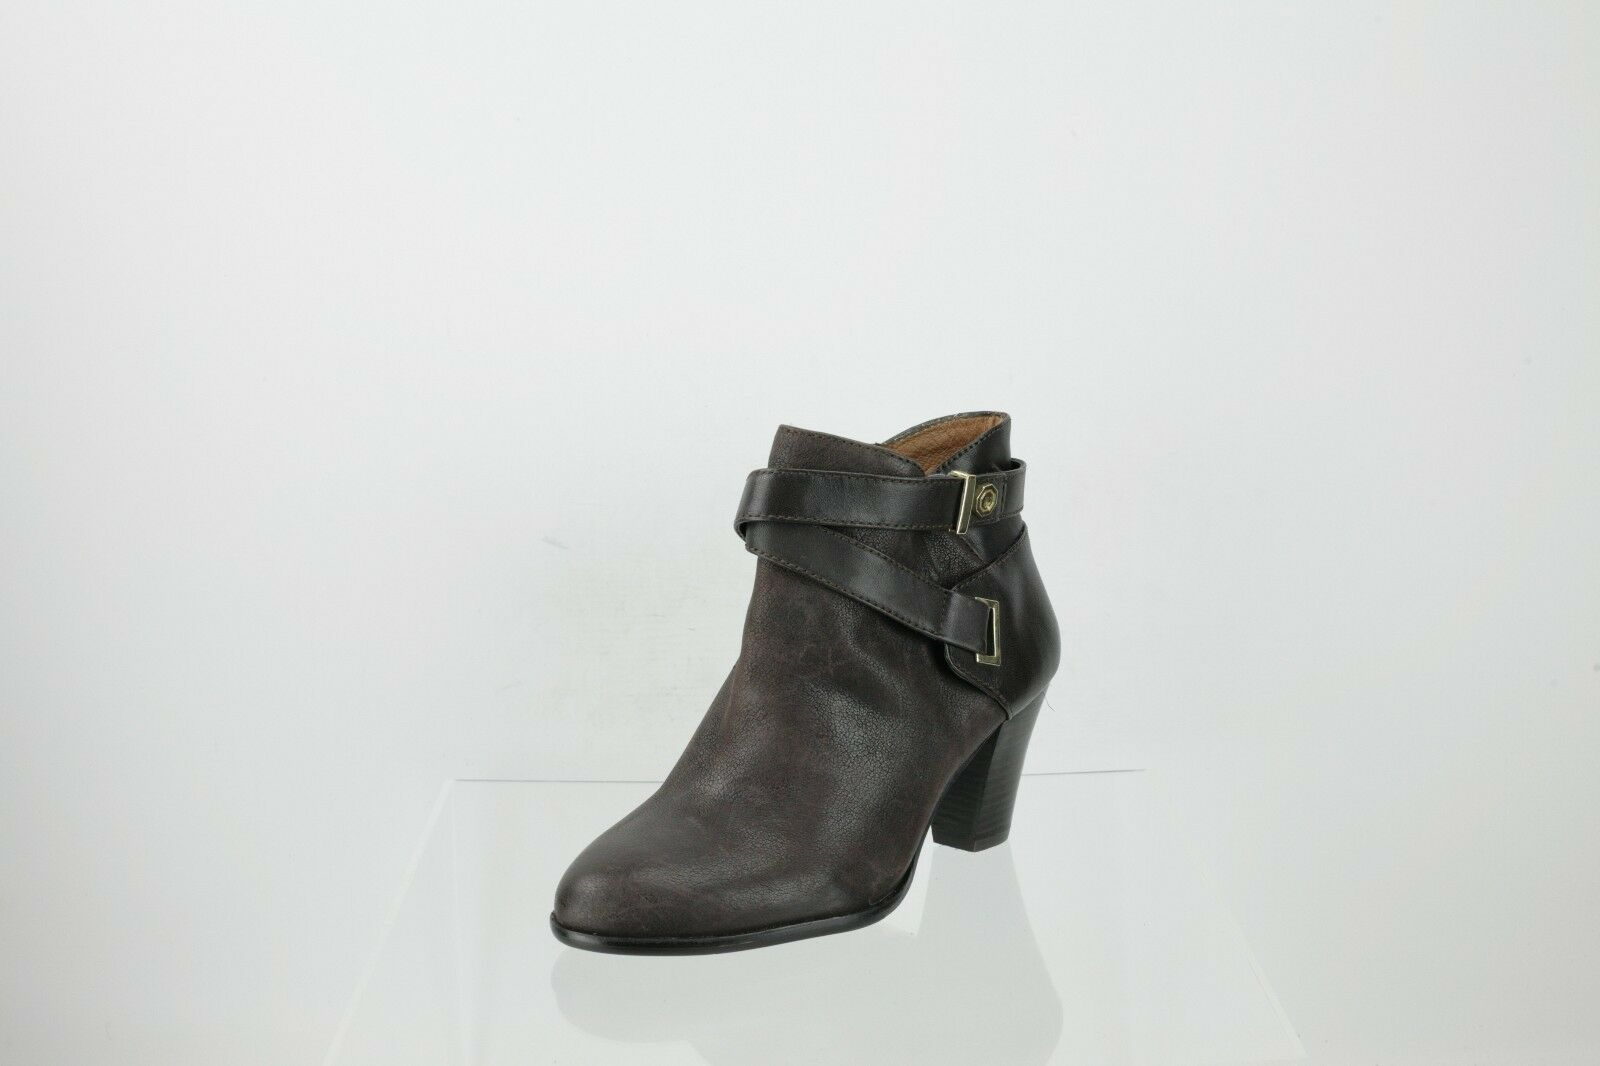 Louise Et Cie Dark Brown Leather Ankle Boots Women's shoes Size 6.5 M NEW